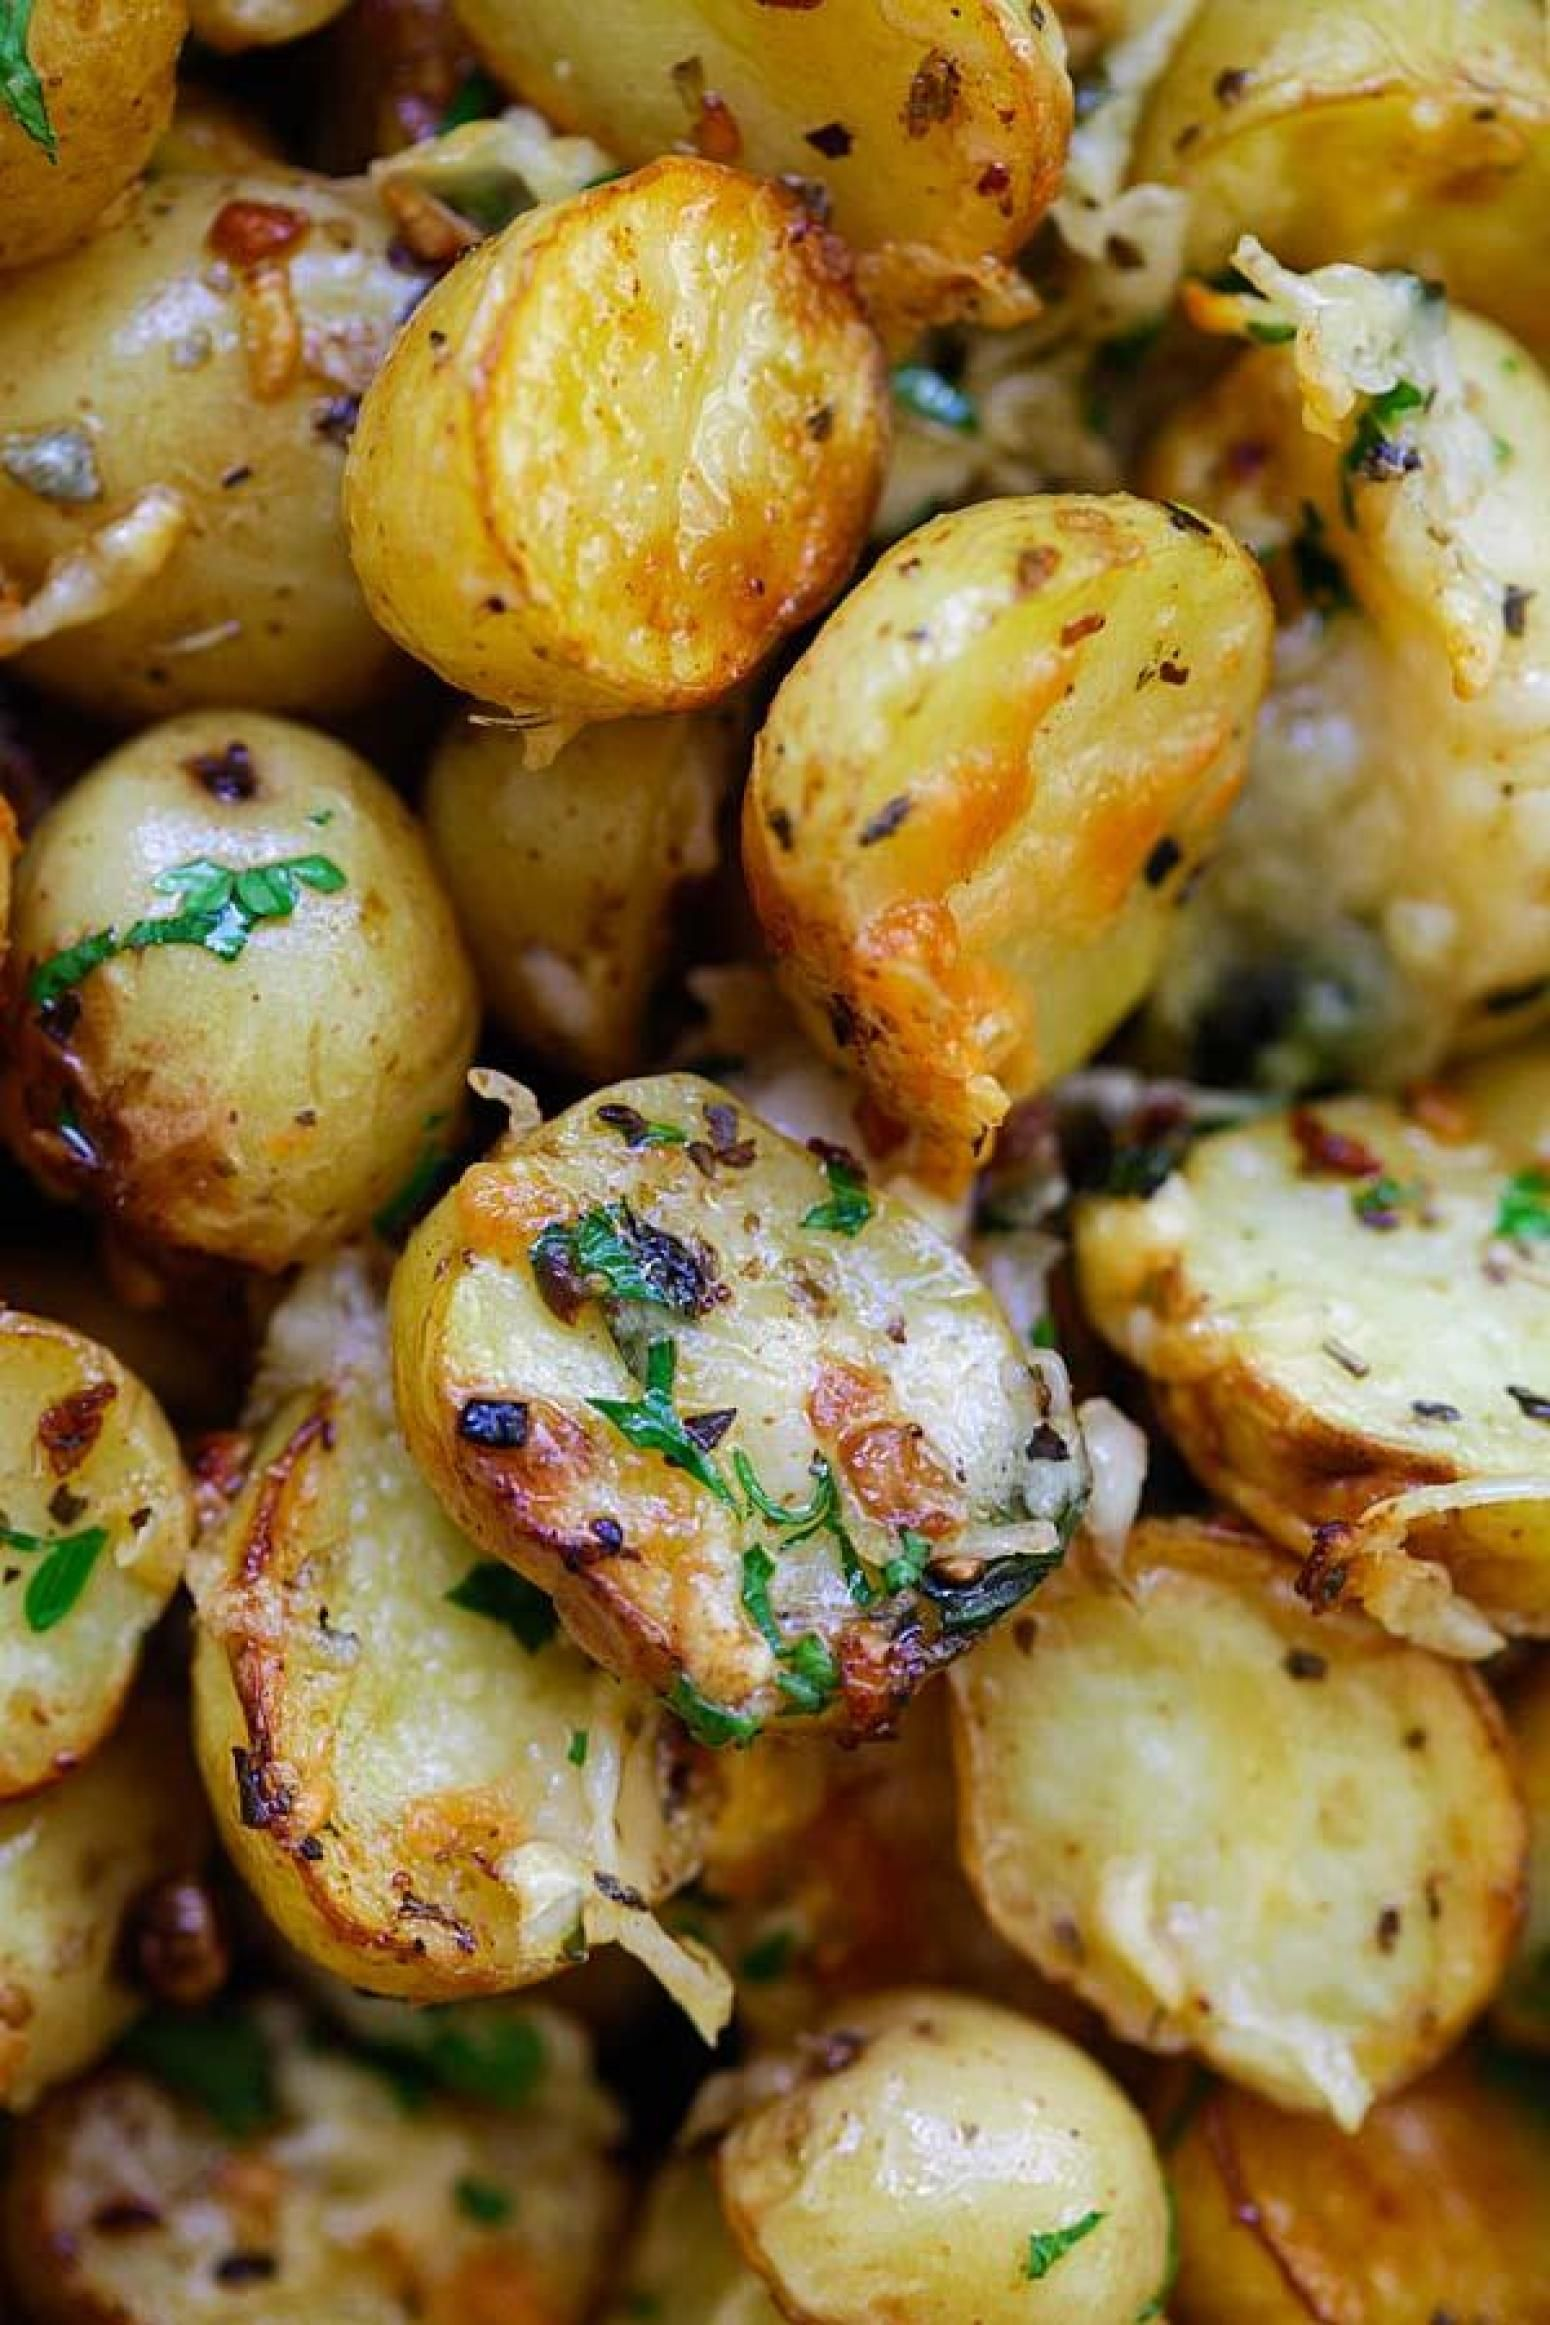 Italian Roasted Potatoes Recipe In 2020 Vegetable Dishes Food Dishes Cooking Recipes